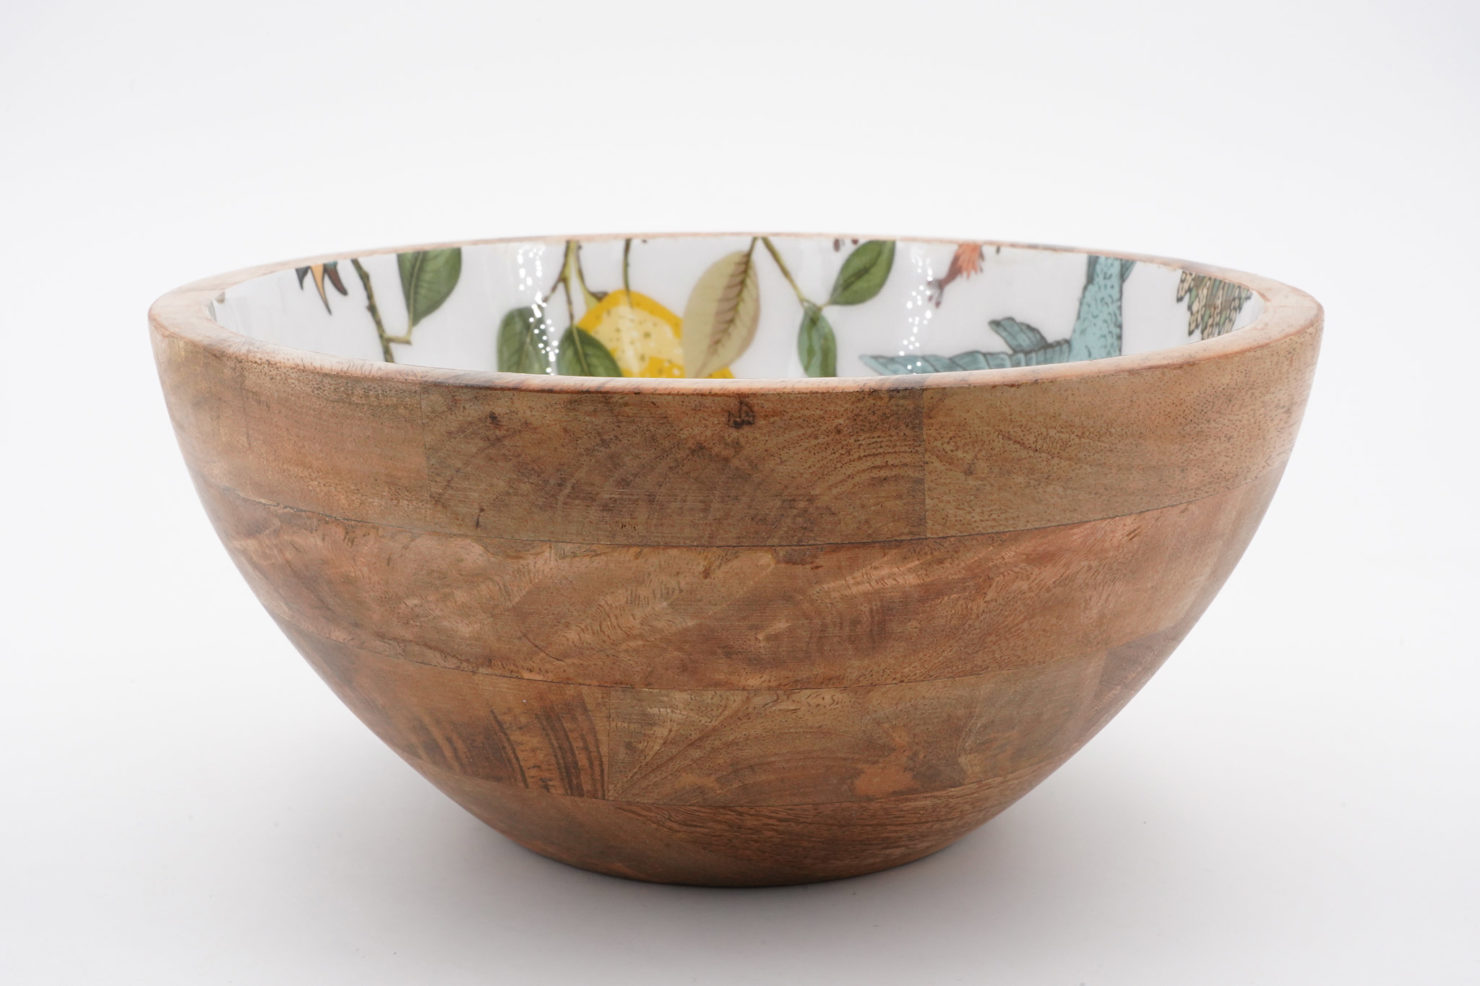 BOWL LEMON BIRD MANGO WOOD 25 CM - BY ROOM